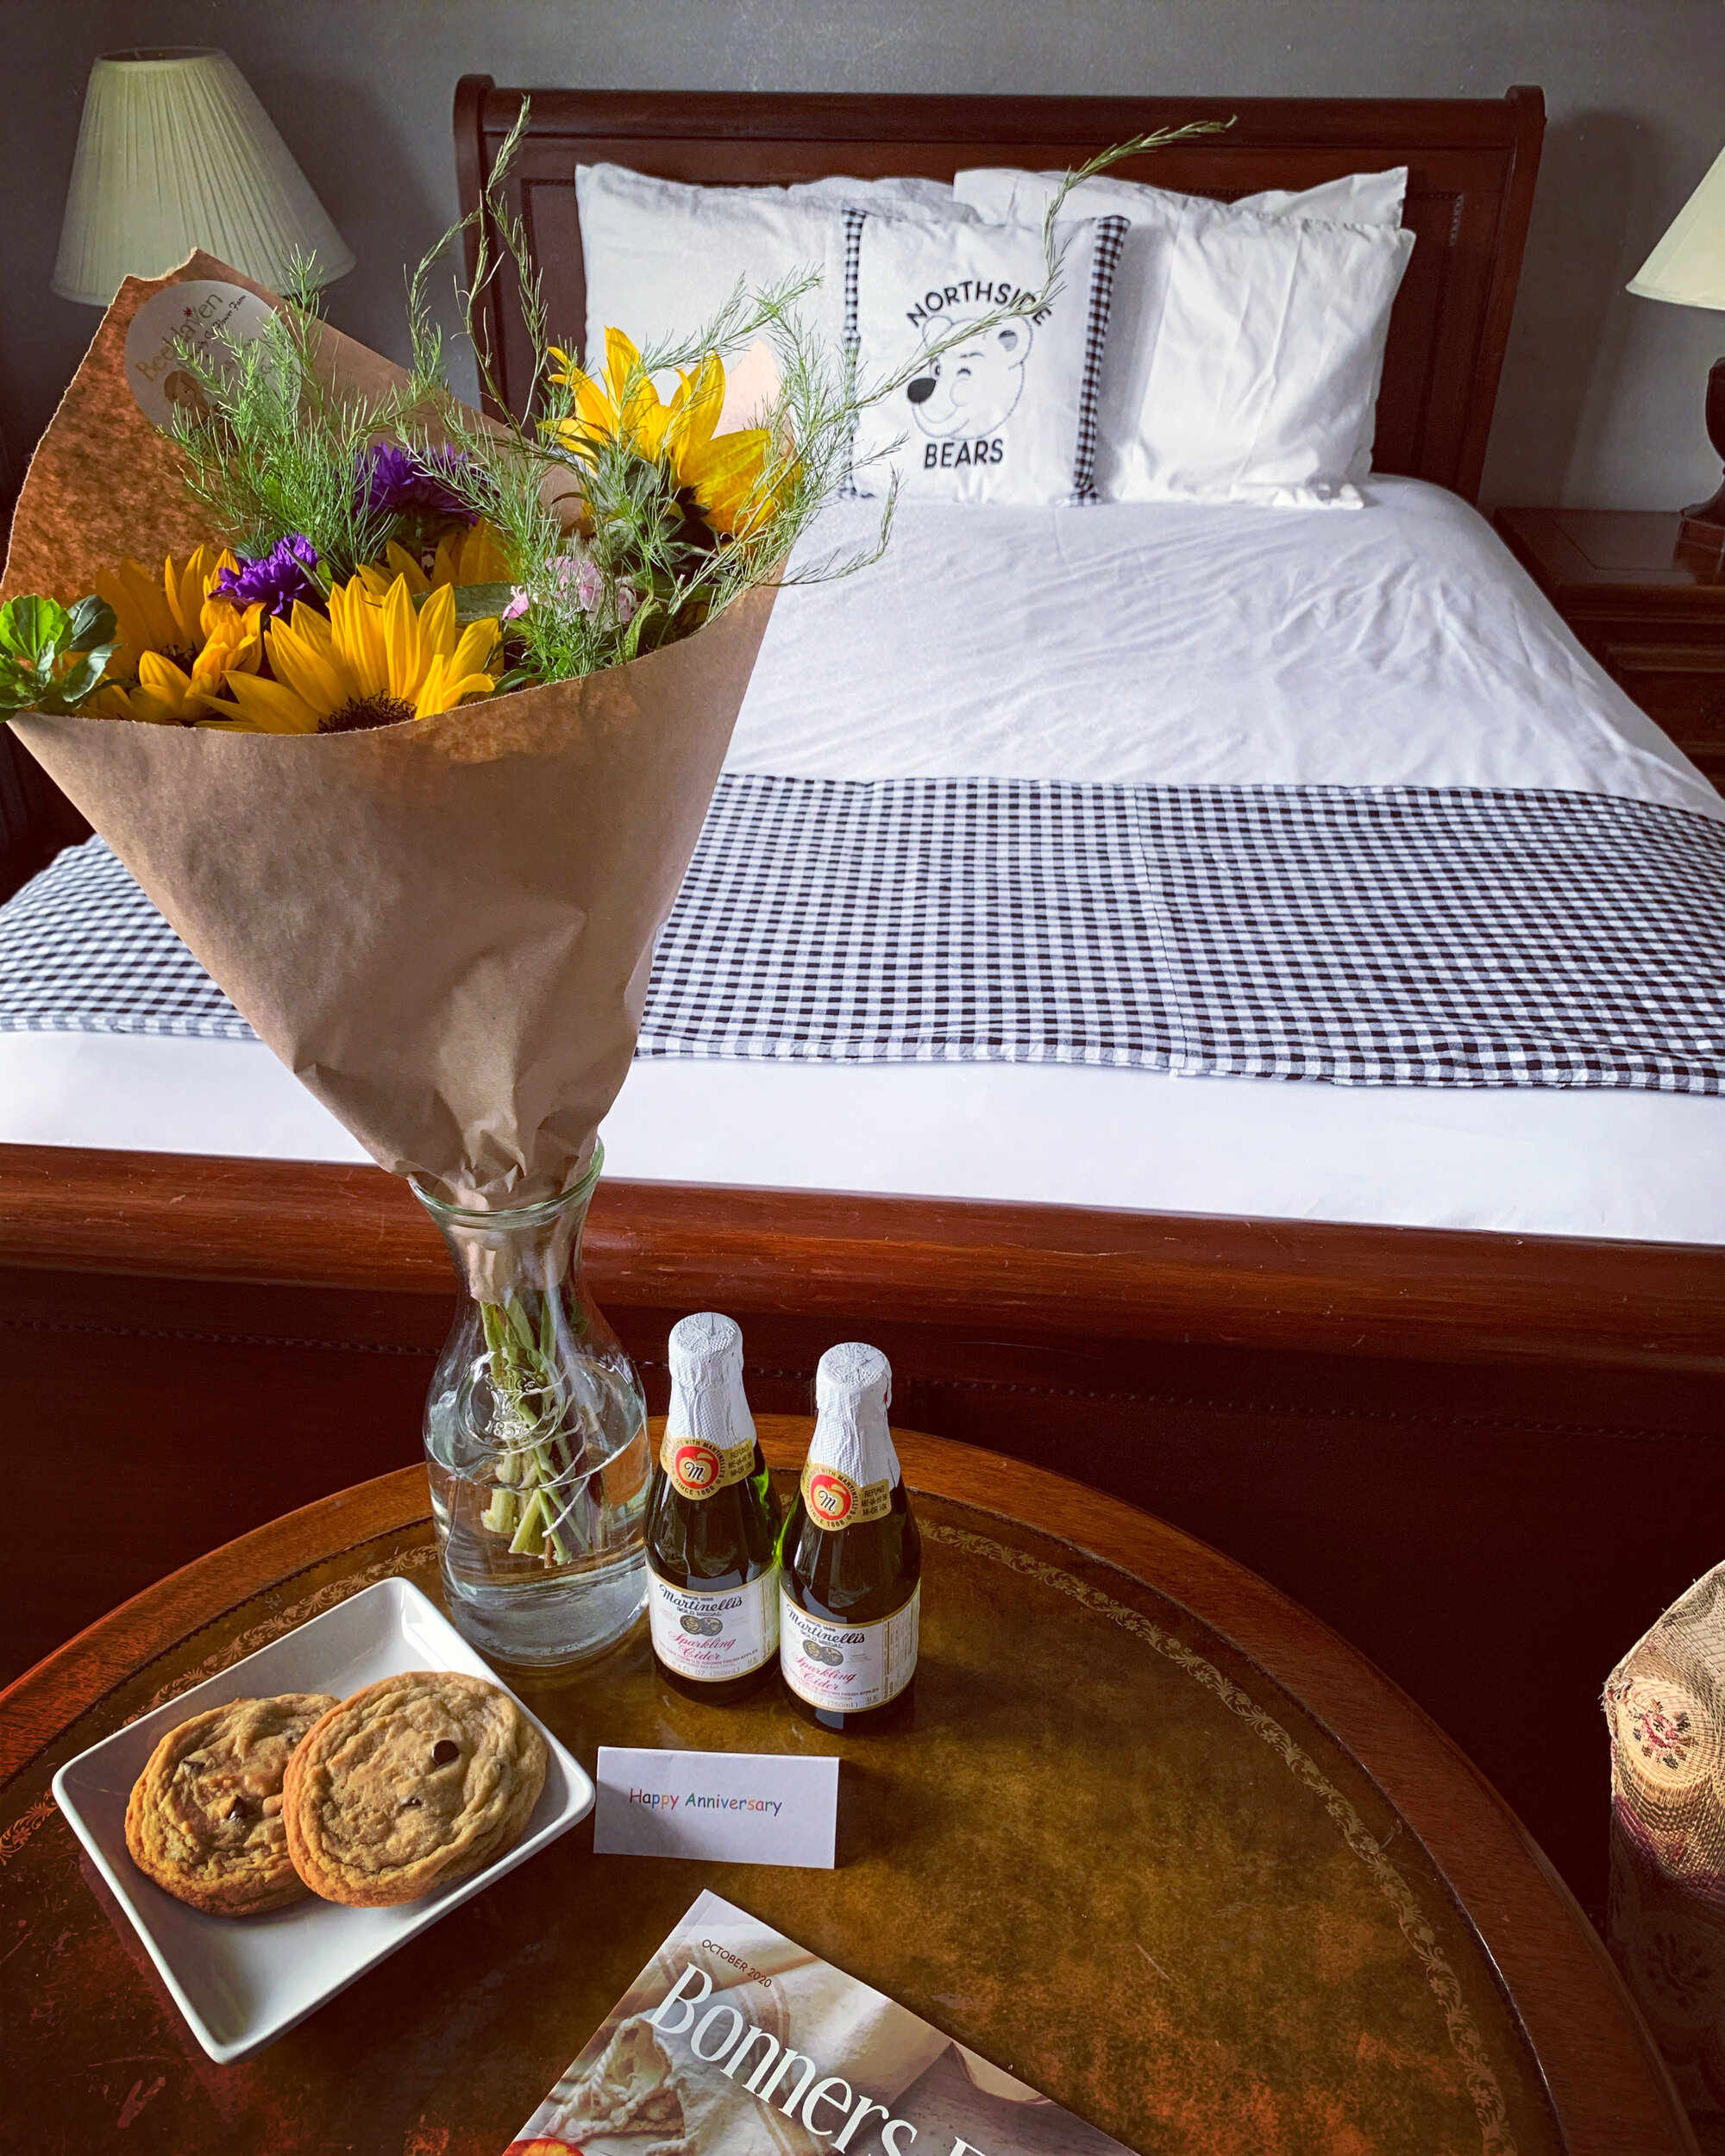 bed with flowers and treats on table